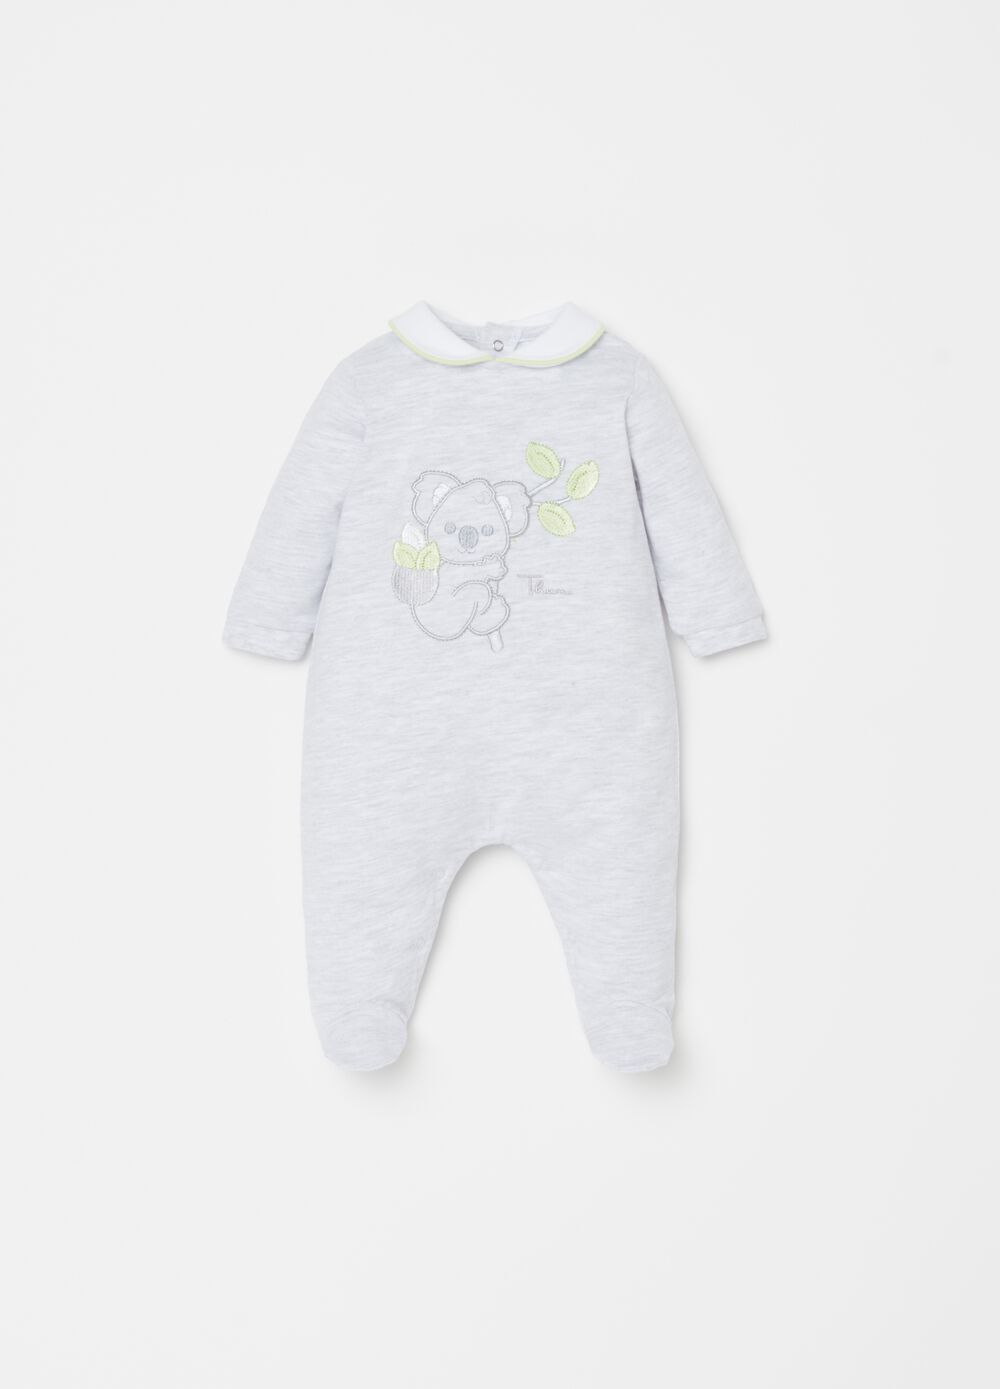 THUN onesie in 100% organic cotton